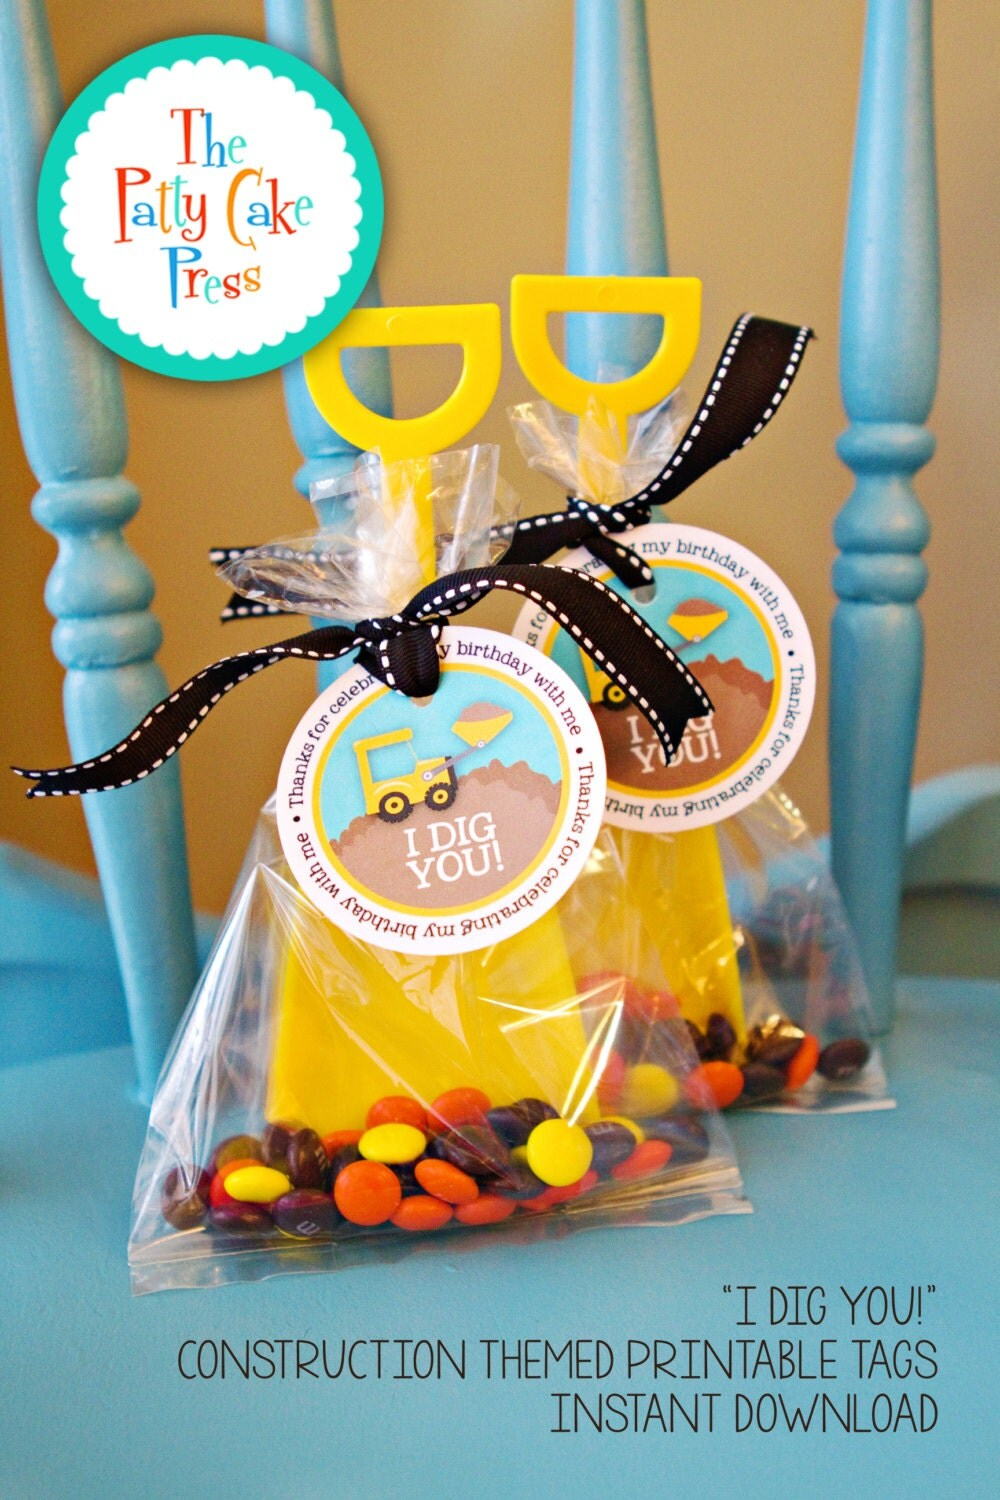 This is a photo of Shocking Printable Party Favor Tags